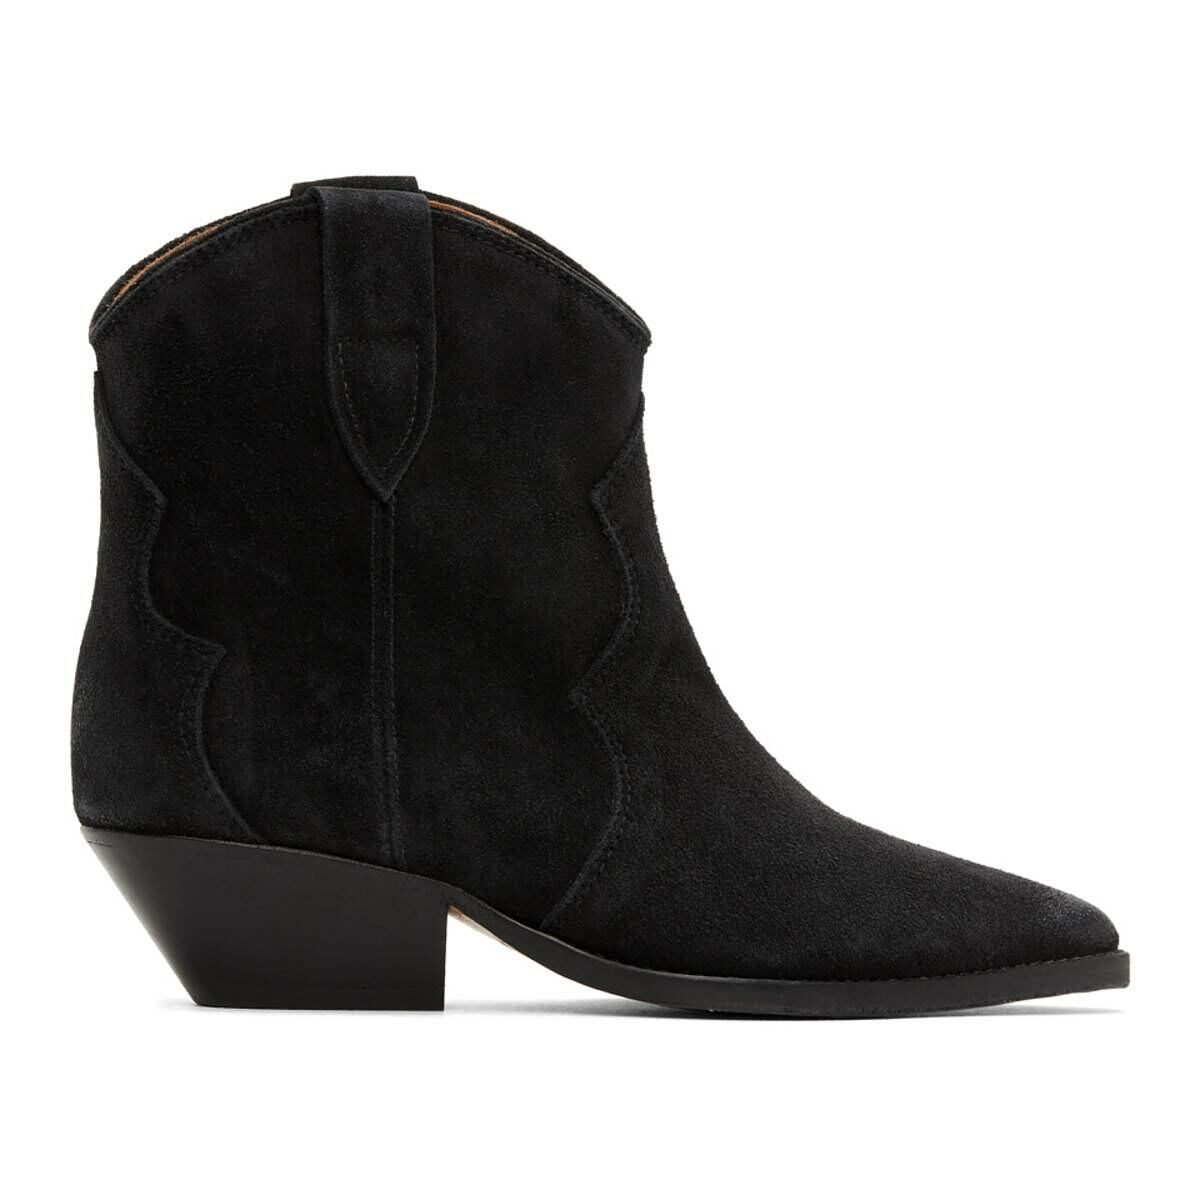 Isabel Marant Black Dewina Boots Ssense USA WOMEN Women SHOES Womens ANKLE BOOTS